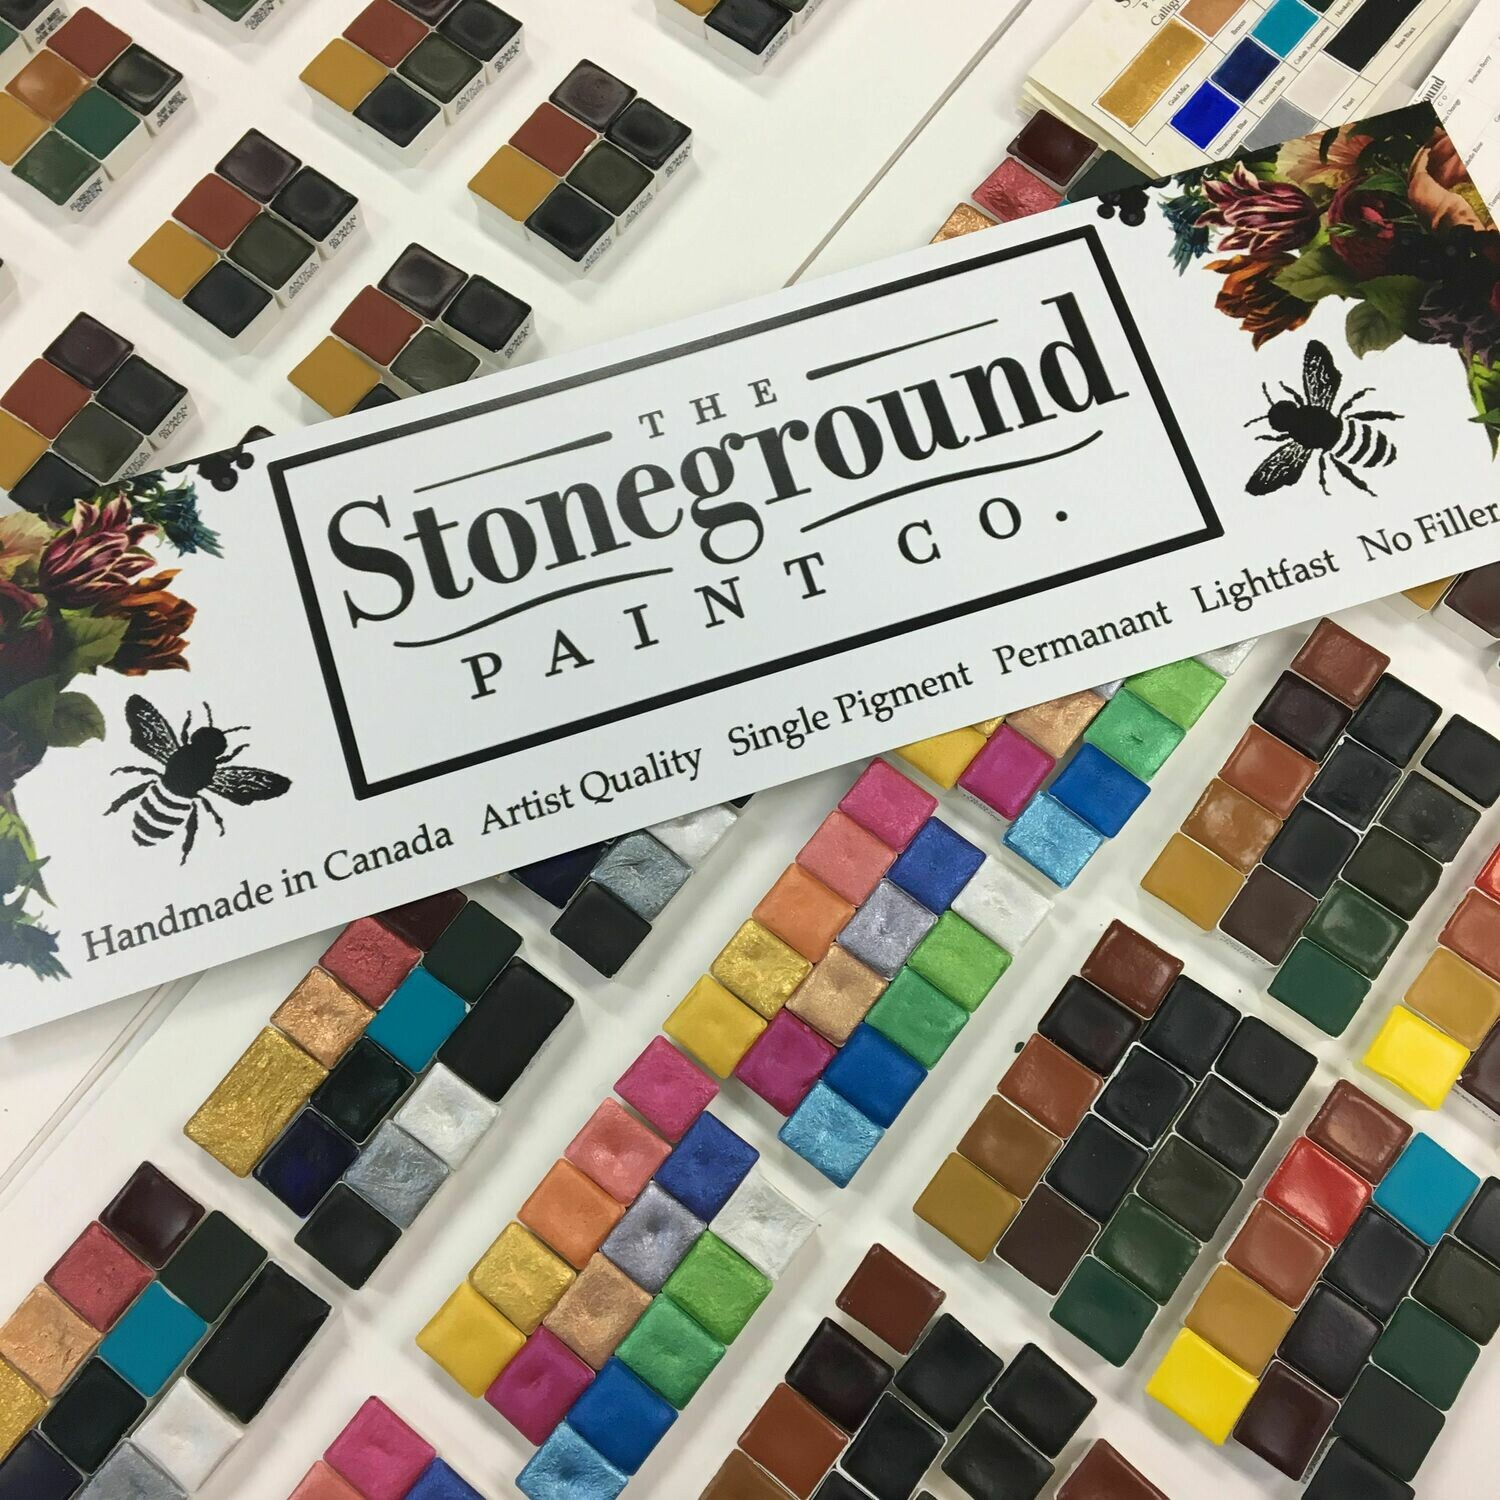 Stoneground Watercolor Individual Pans